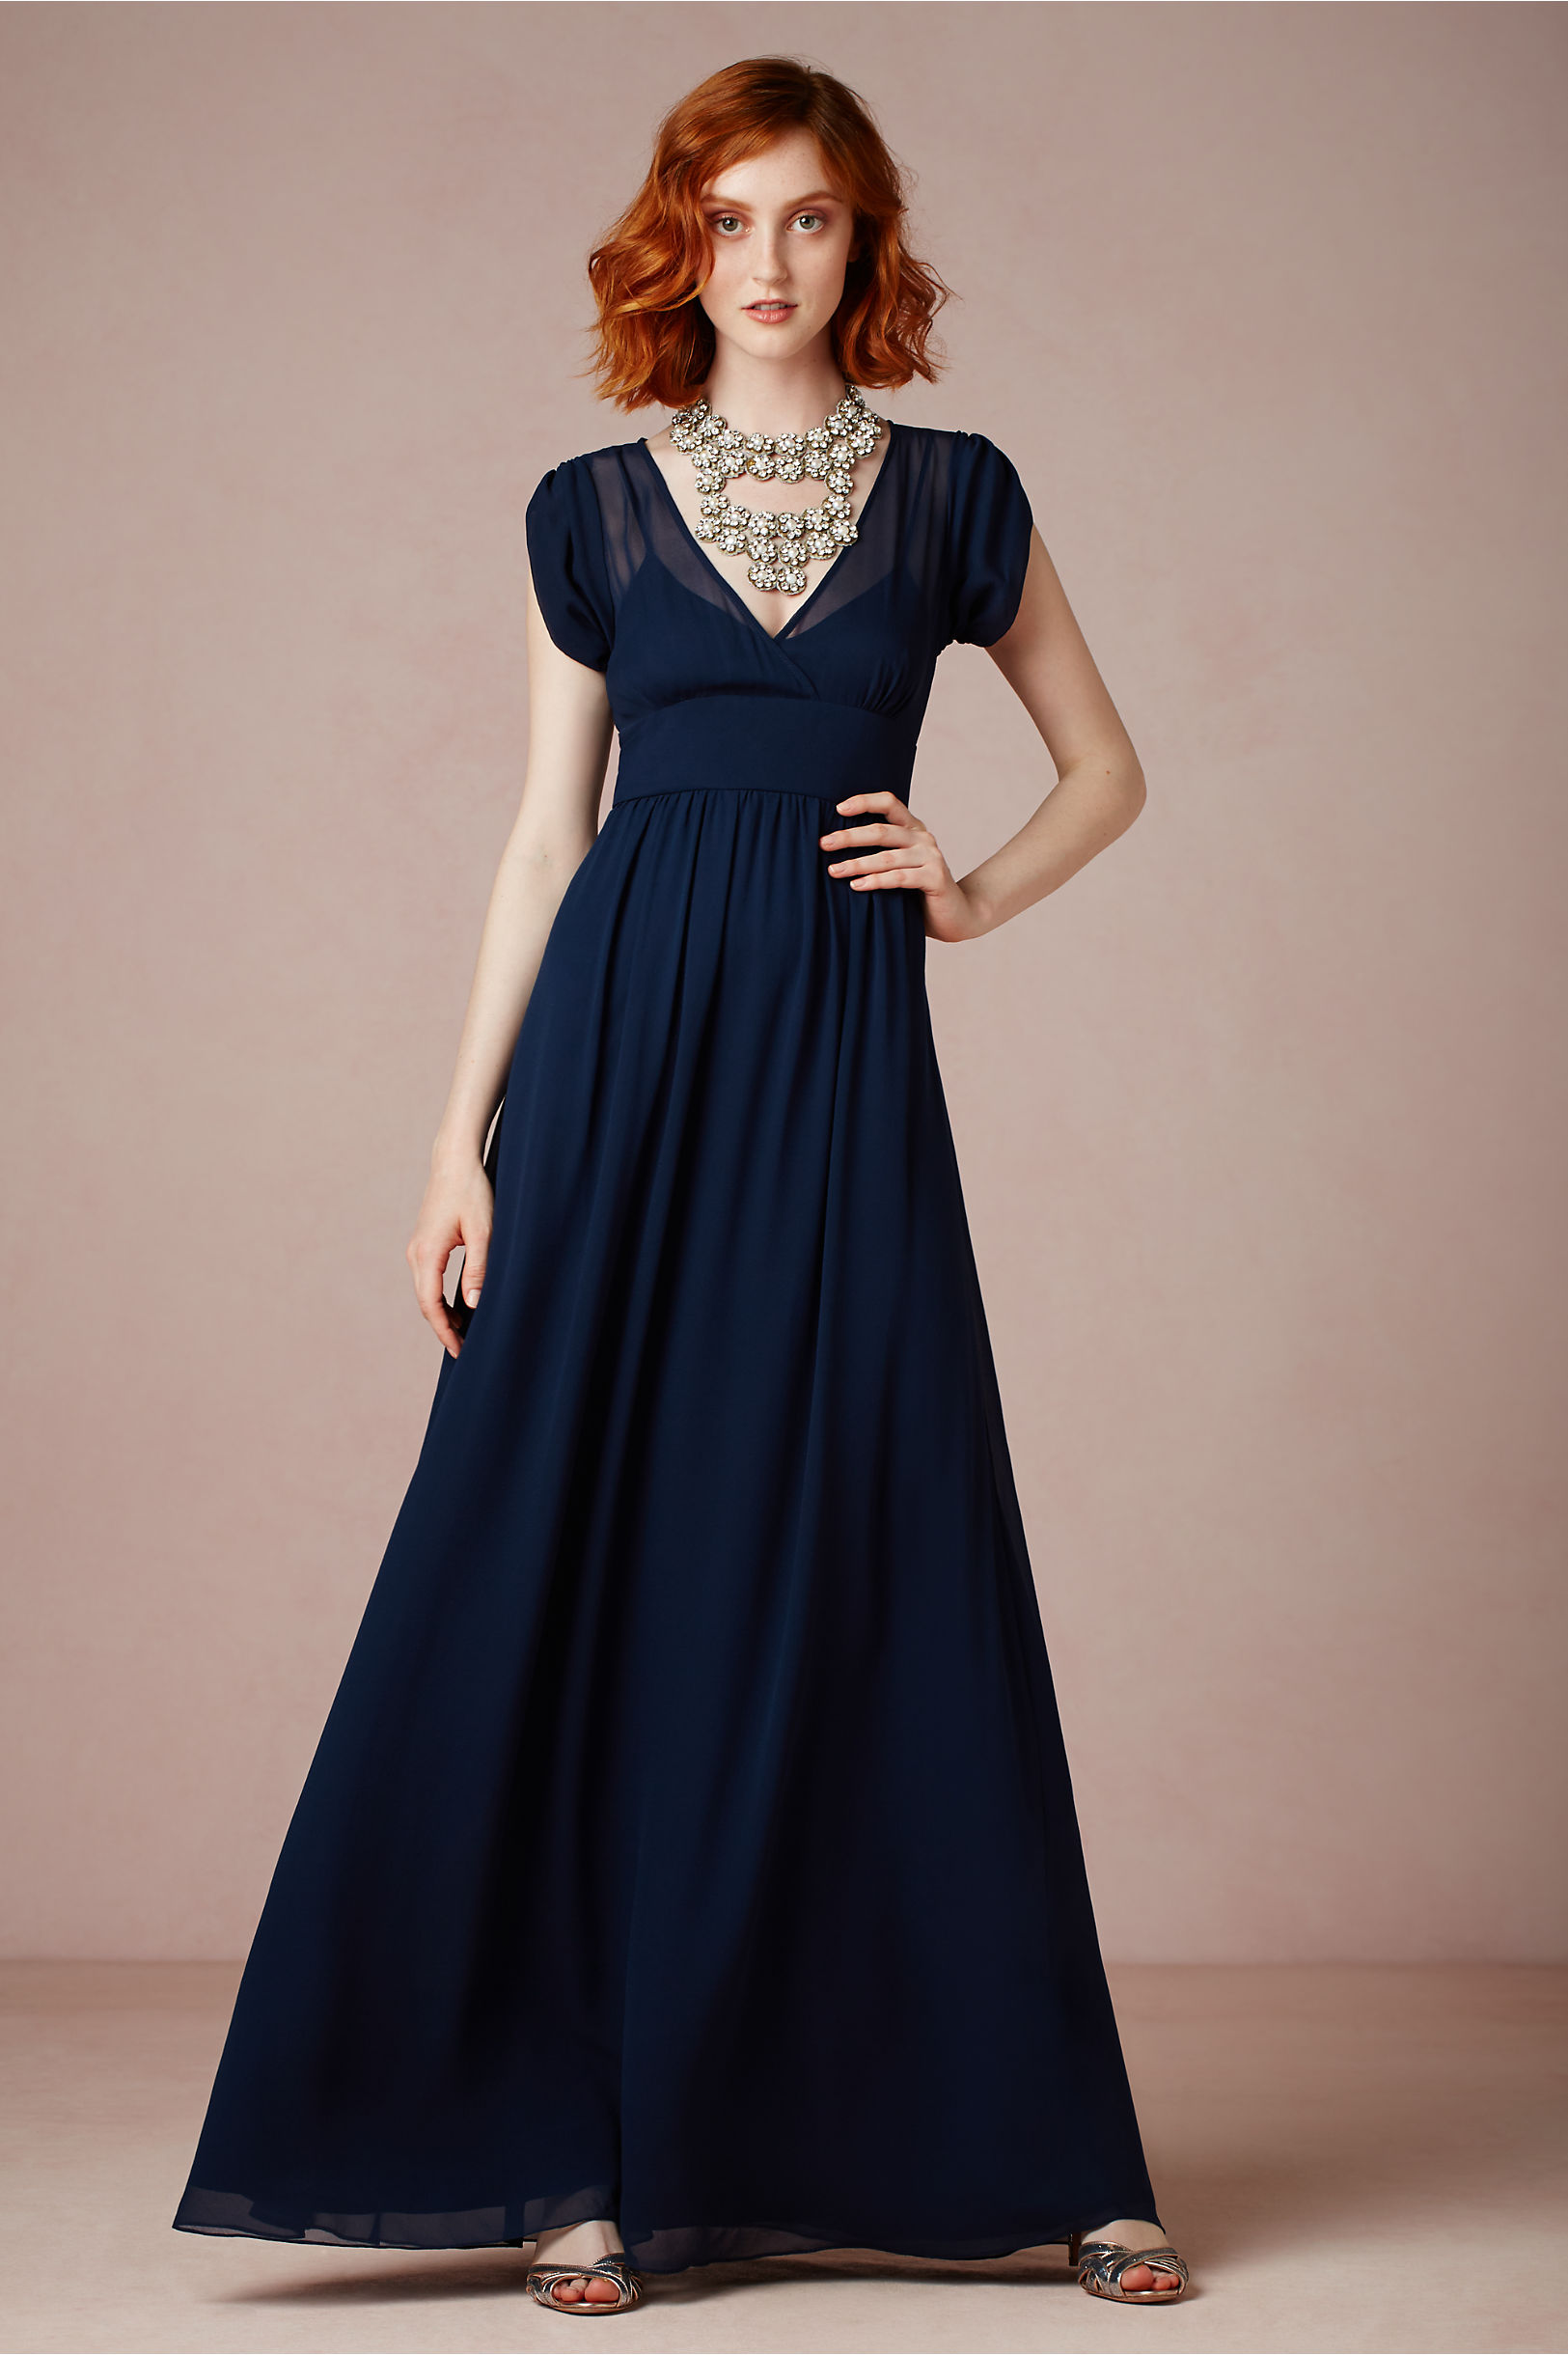 Ava Maxi Dress in Occasion Dresses | BHLDN